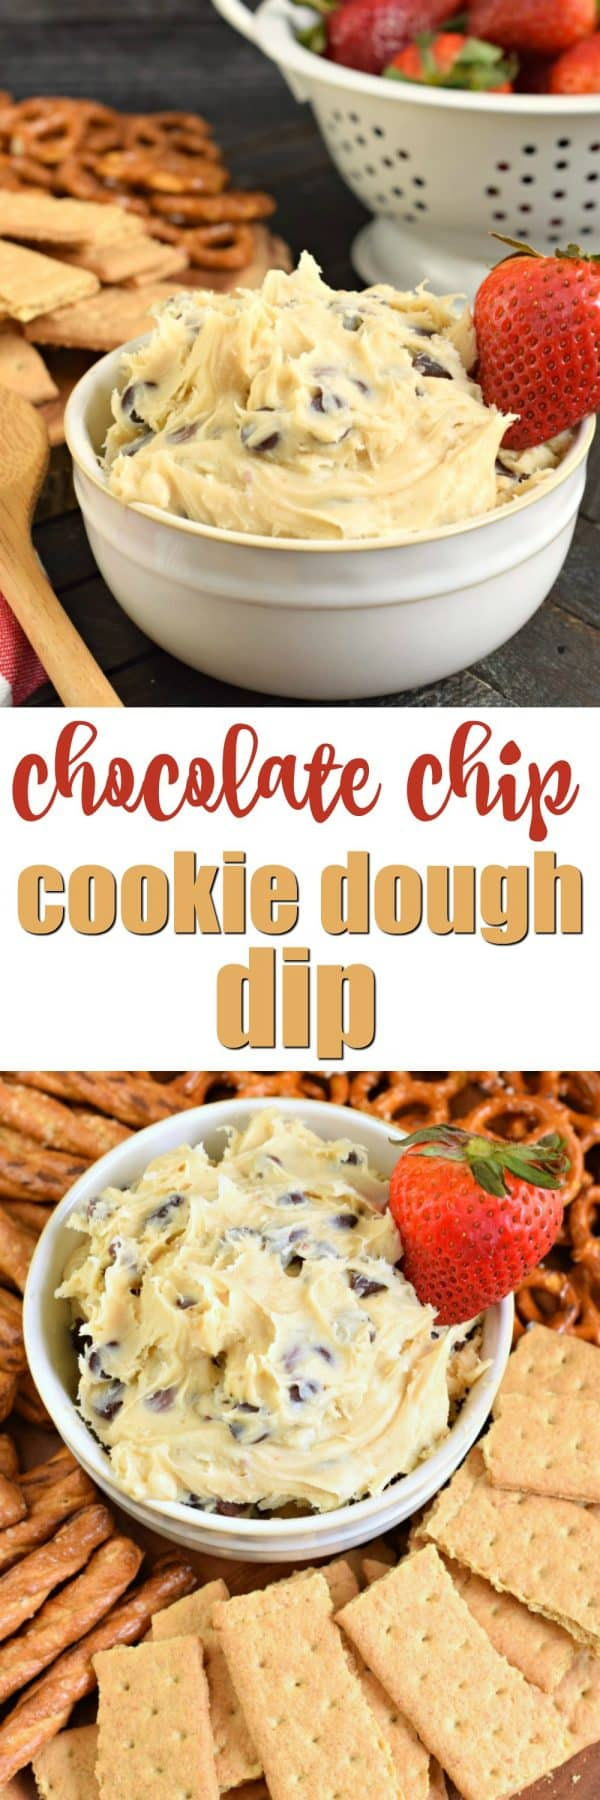 Easy 5 Minute Chocolate Chip Cookie Dough Dip Recipe